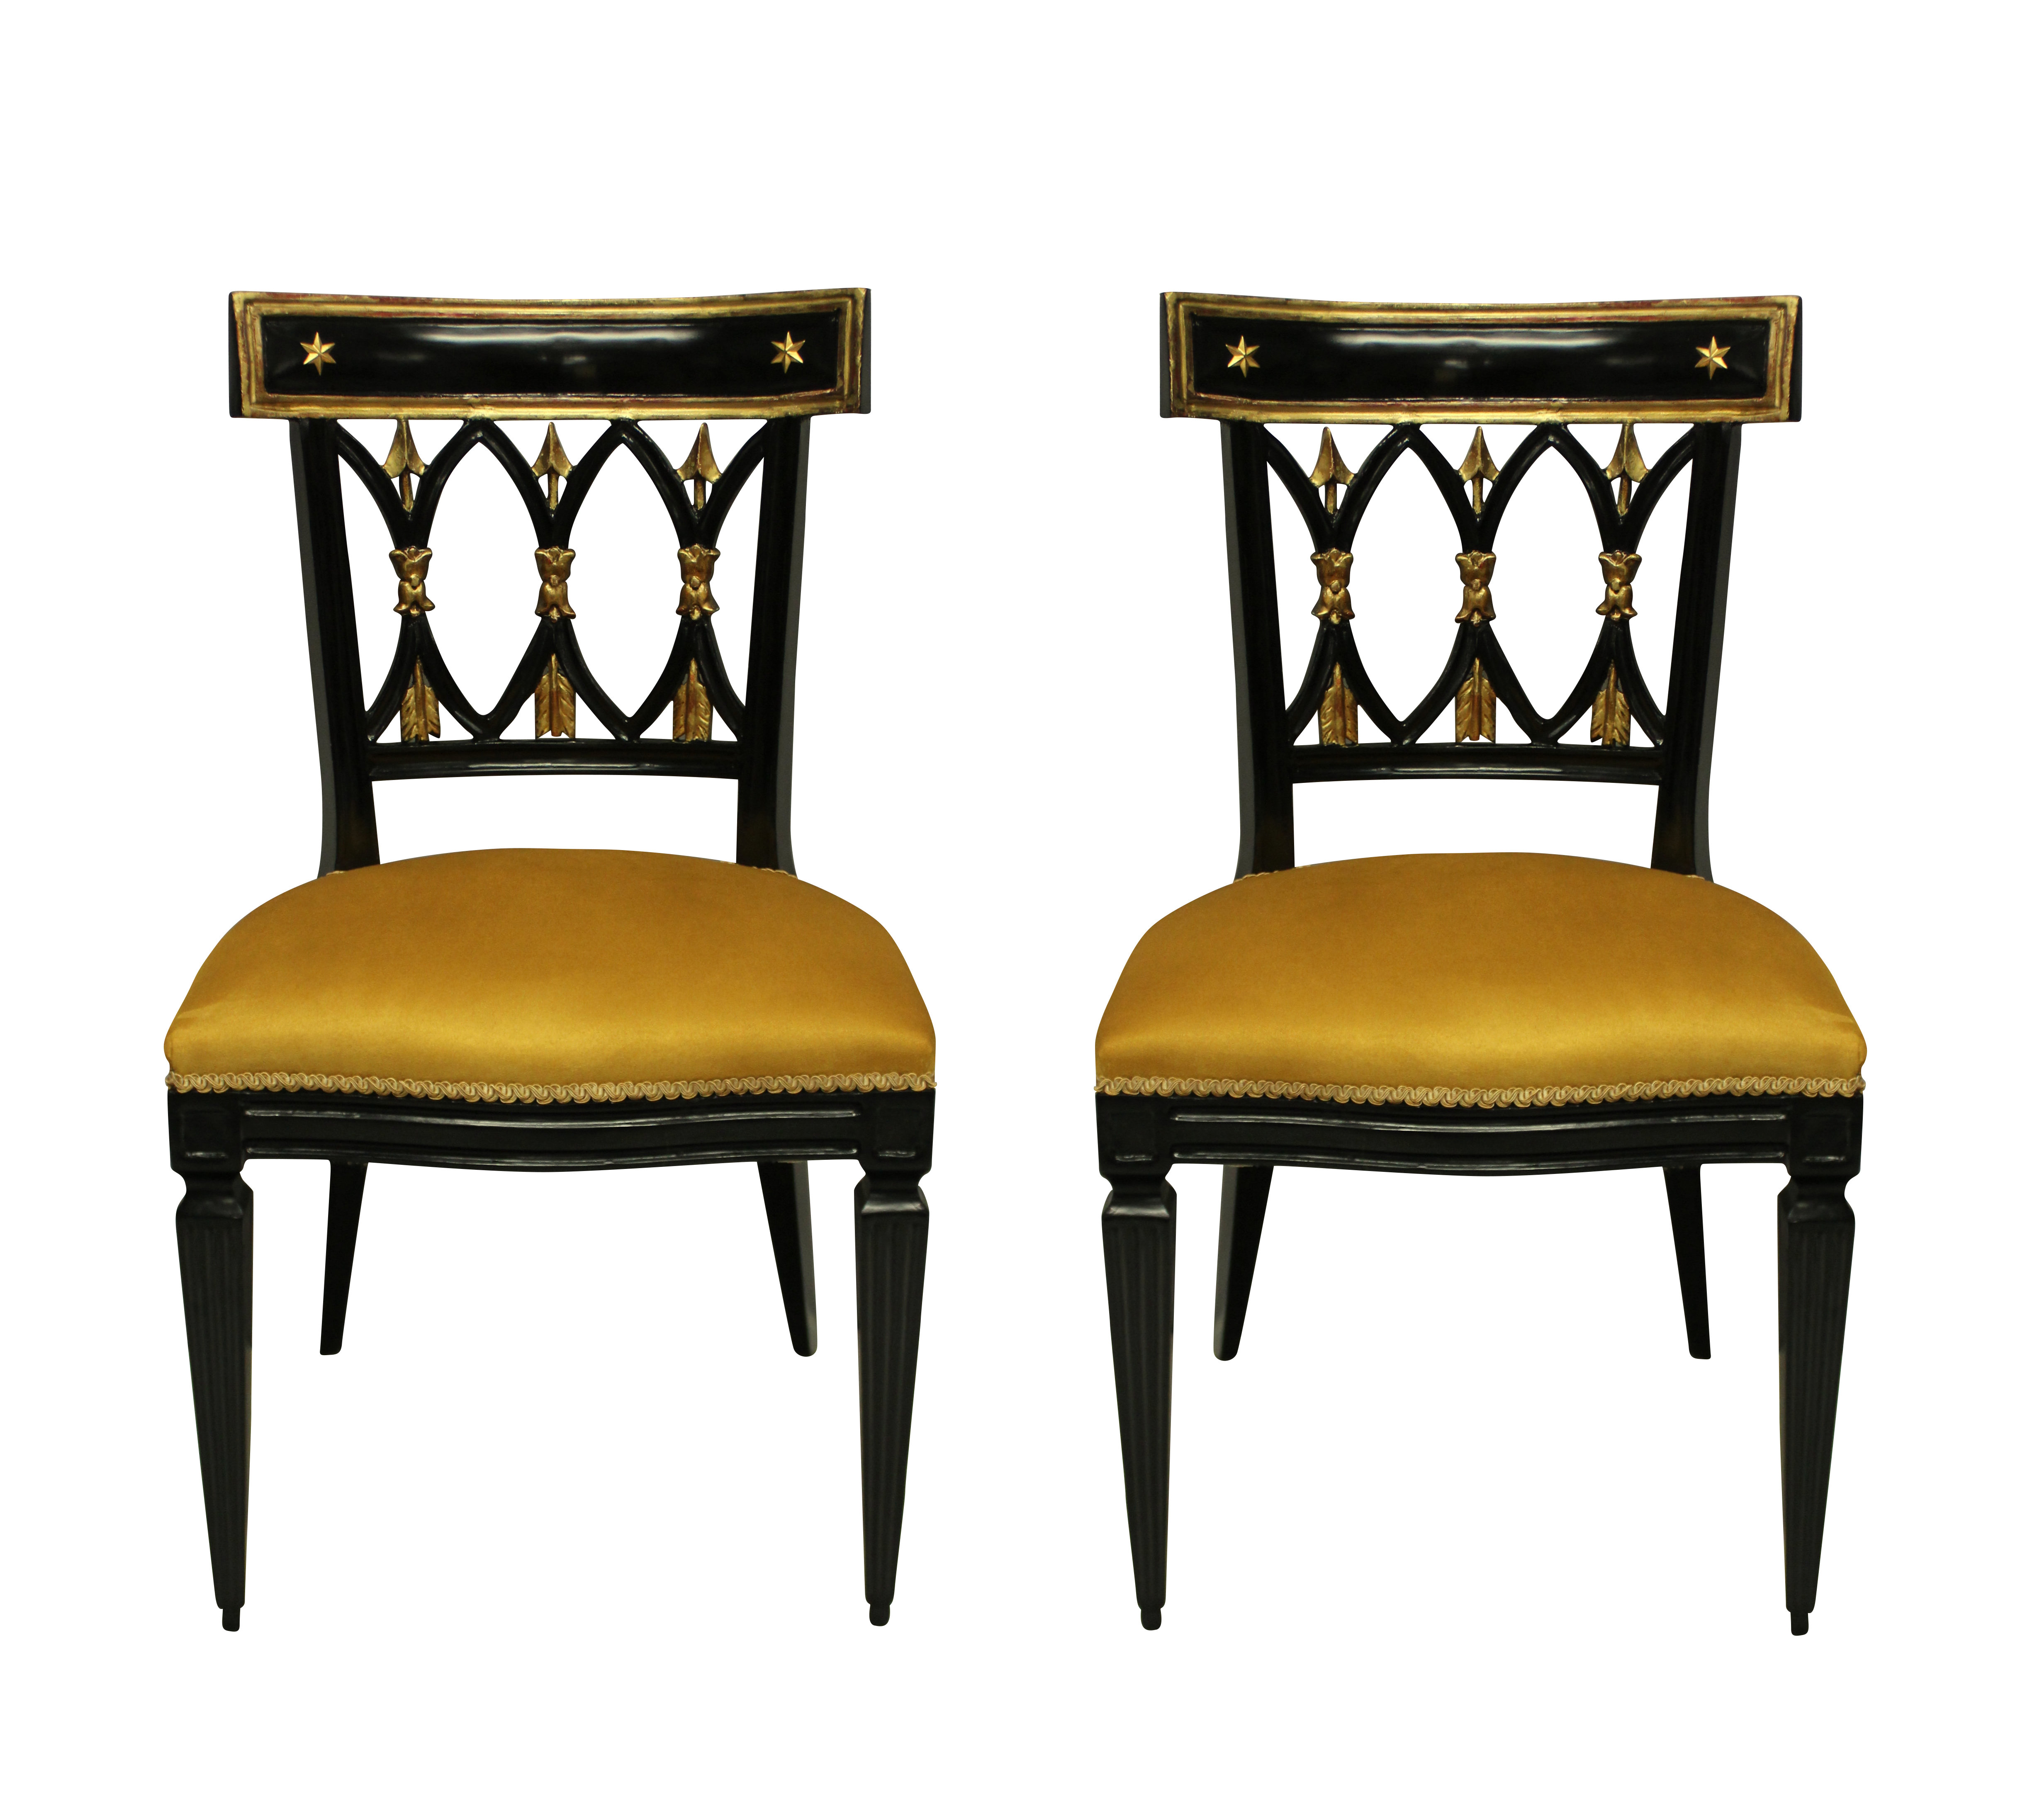 A PAIR OF FRENCH EMPIRE REVIVAL HALL CHAIRS